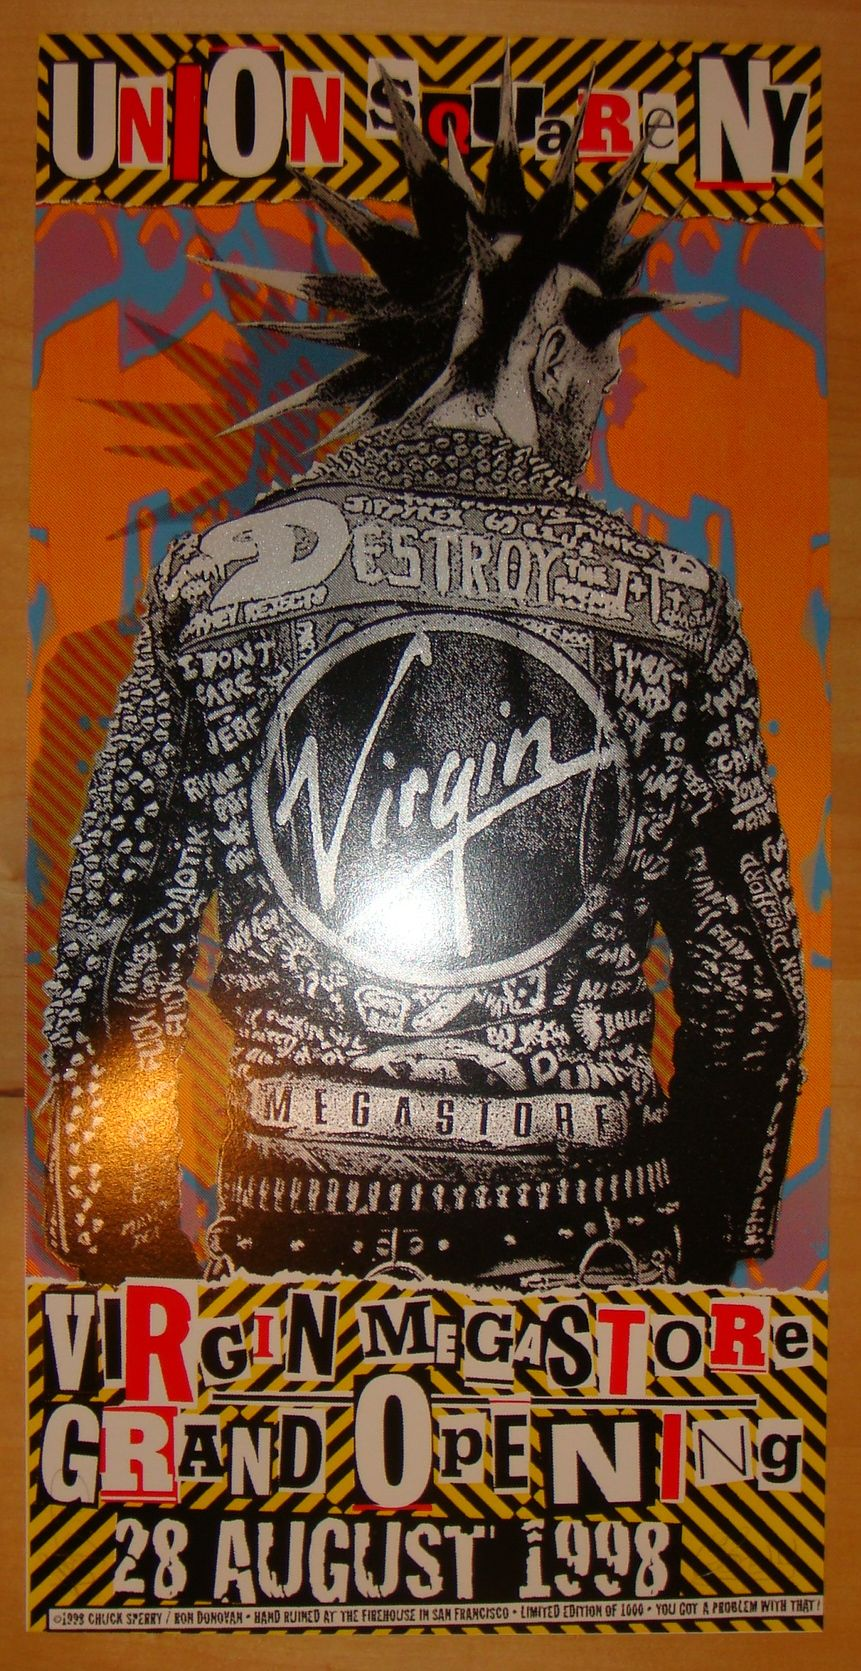 Virgin Megastore NYC poster by Firehouse